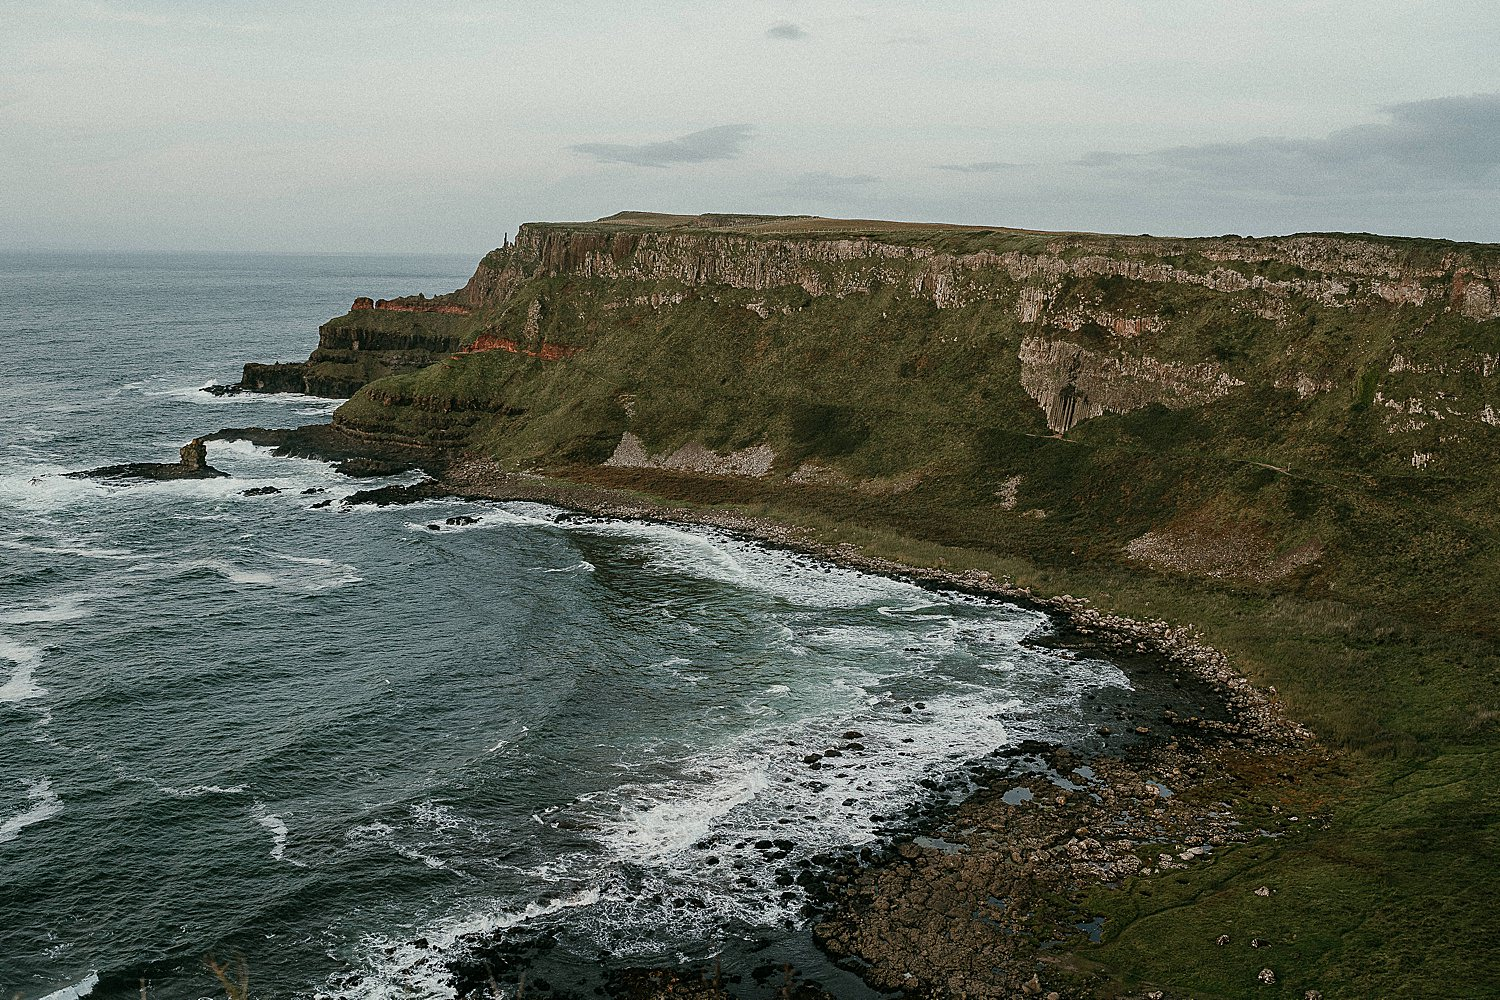 The view from the top of the cliff top path at the Giants Causeway in Co Antrim, Northern Ireland